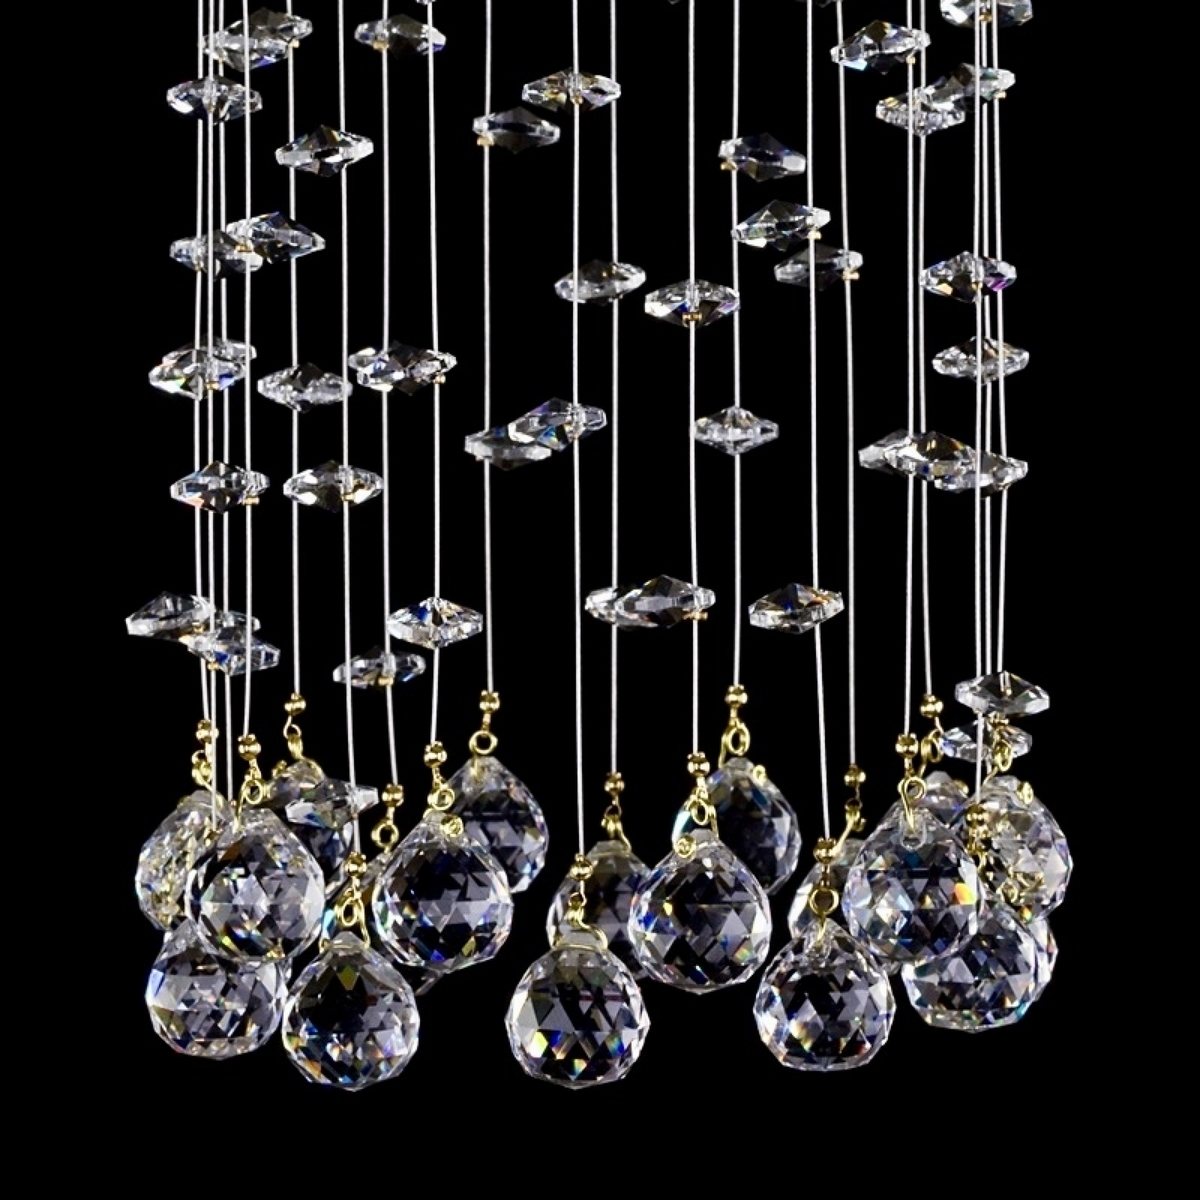 Crystal wall-mounted lighting fixture SMALL GAME 96-01 WL